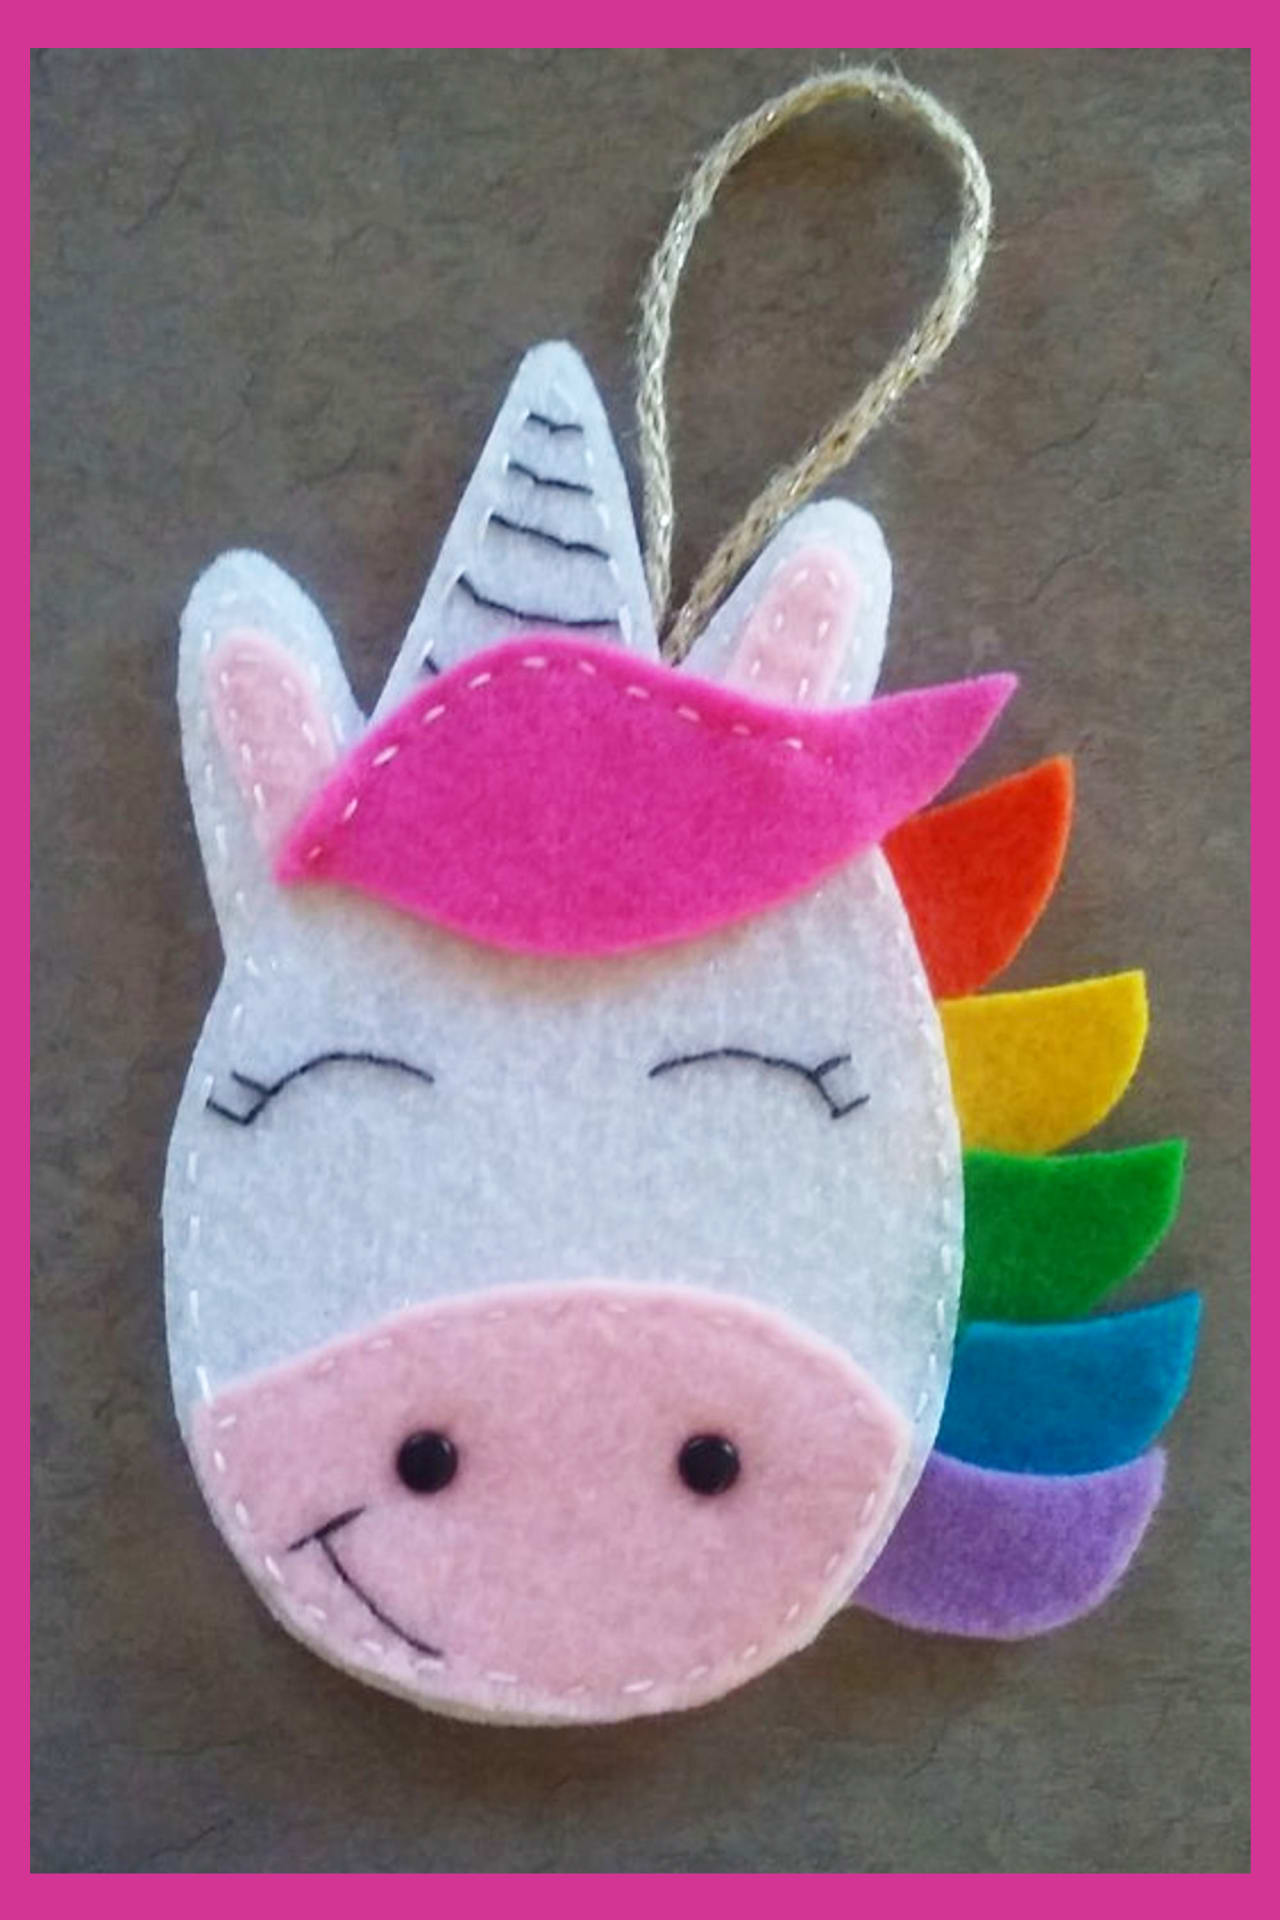 Unicorn crafts - fun and easy DIY unicorn craft projects for kids and for unicorn birthday parties - felt crafts for kids